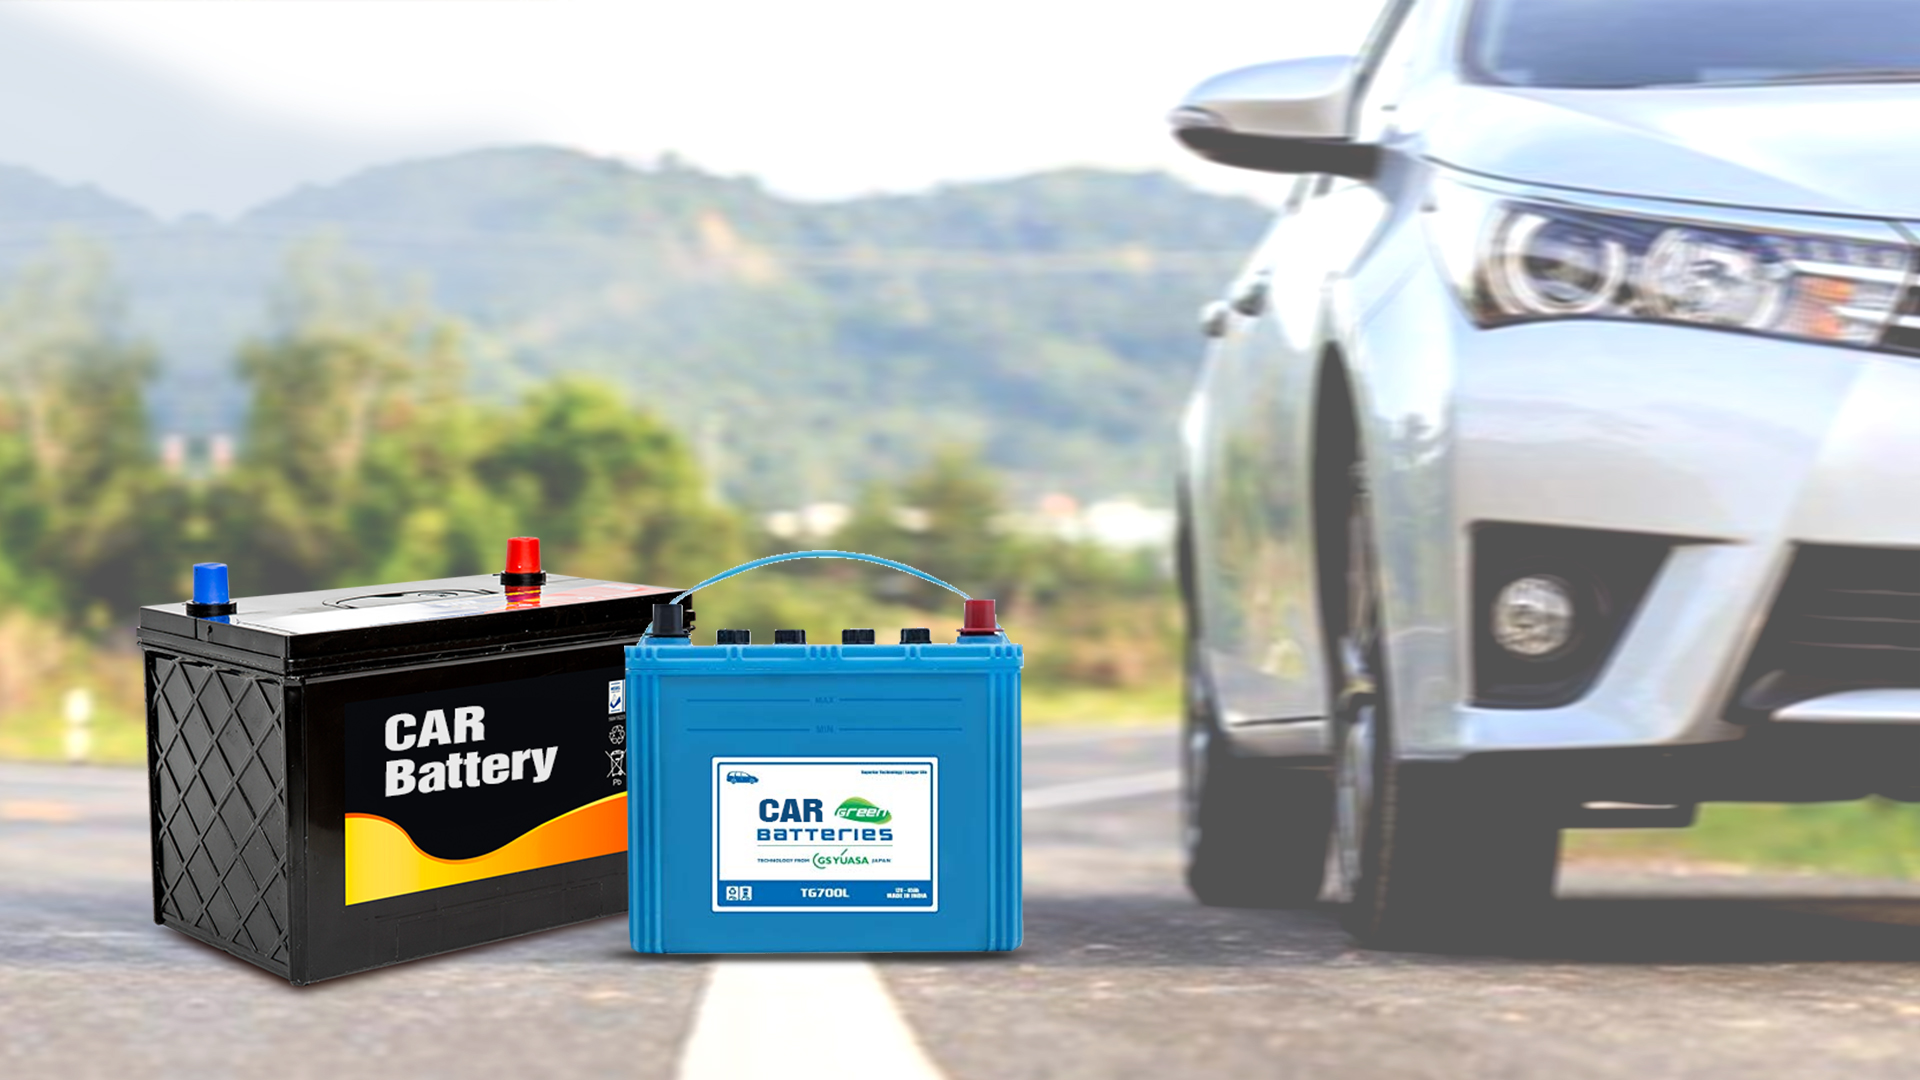 Car Battery Life: Learn How to Extend Battery Life